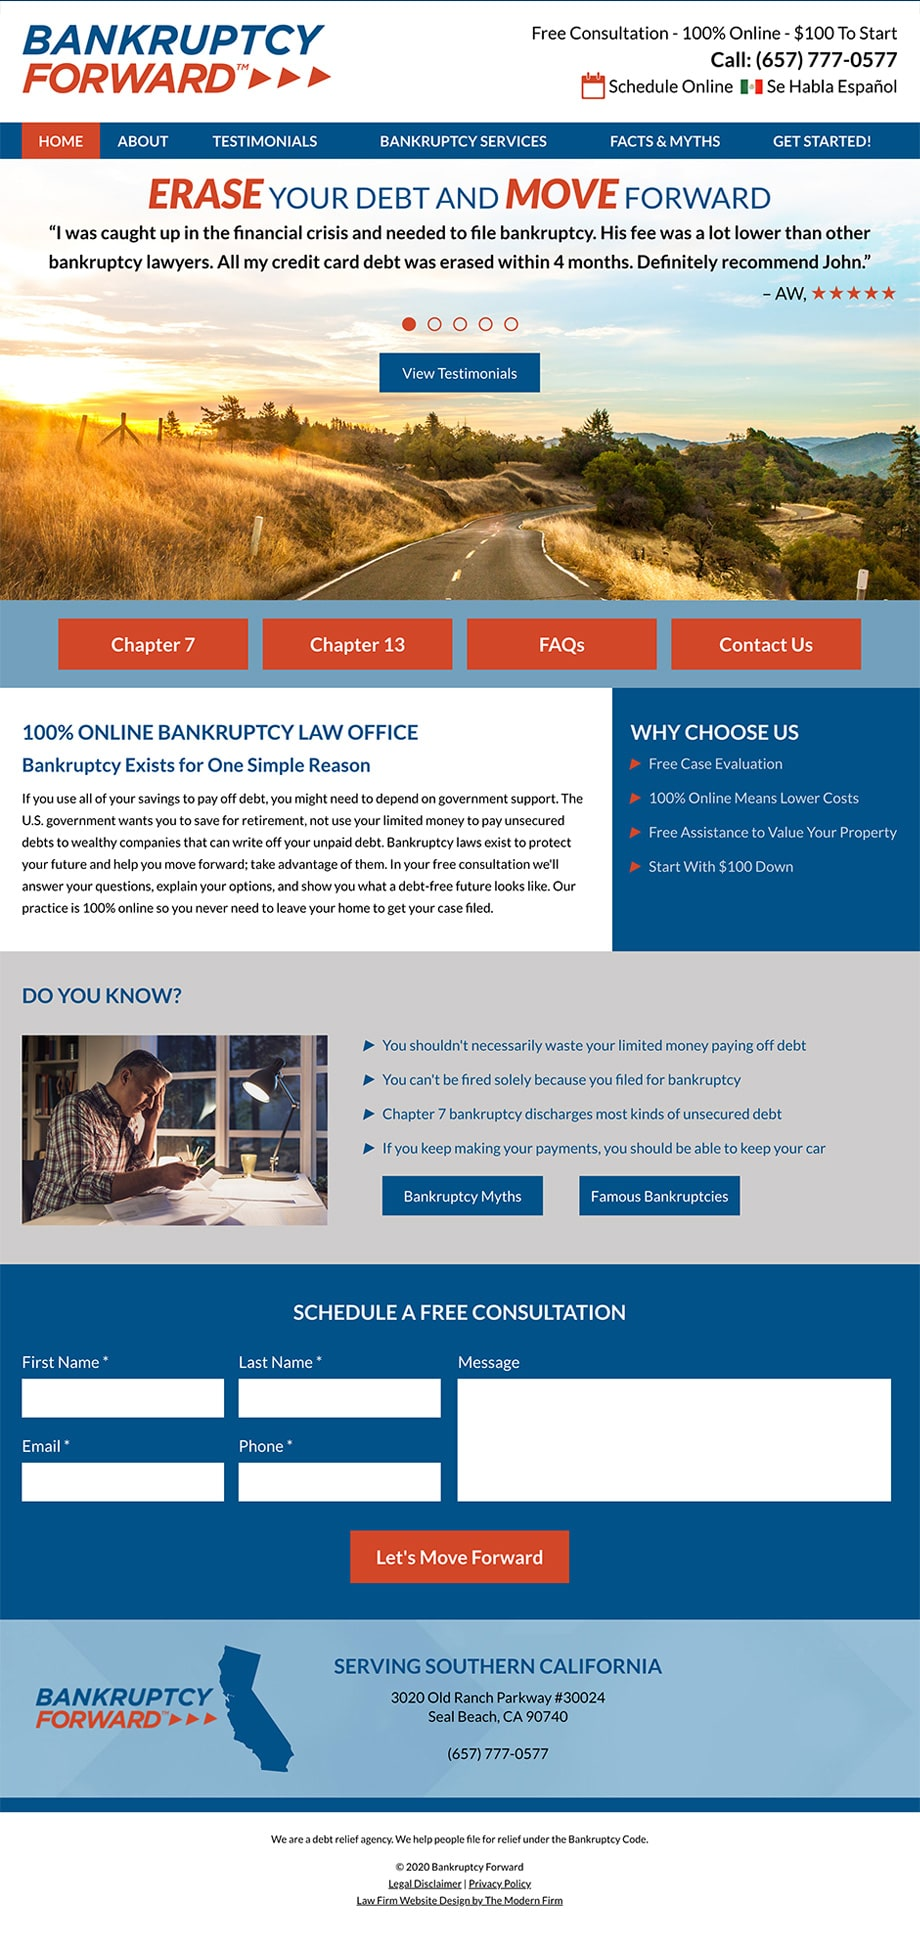 Law Firm Website Design for Bankruptcy Forward